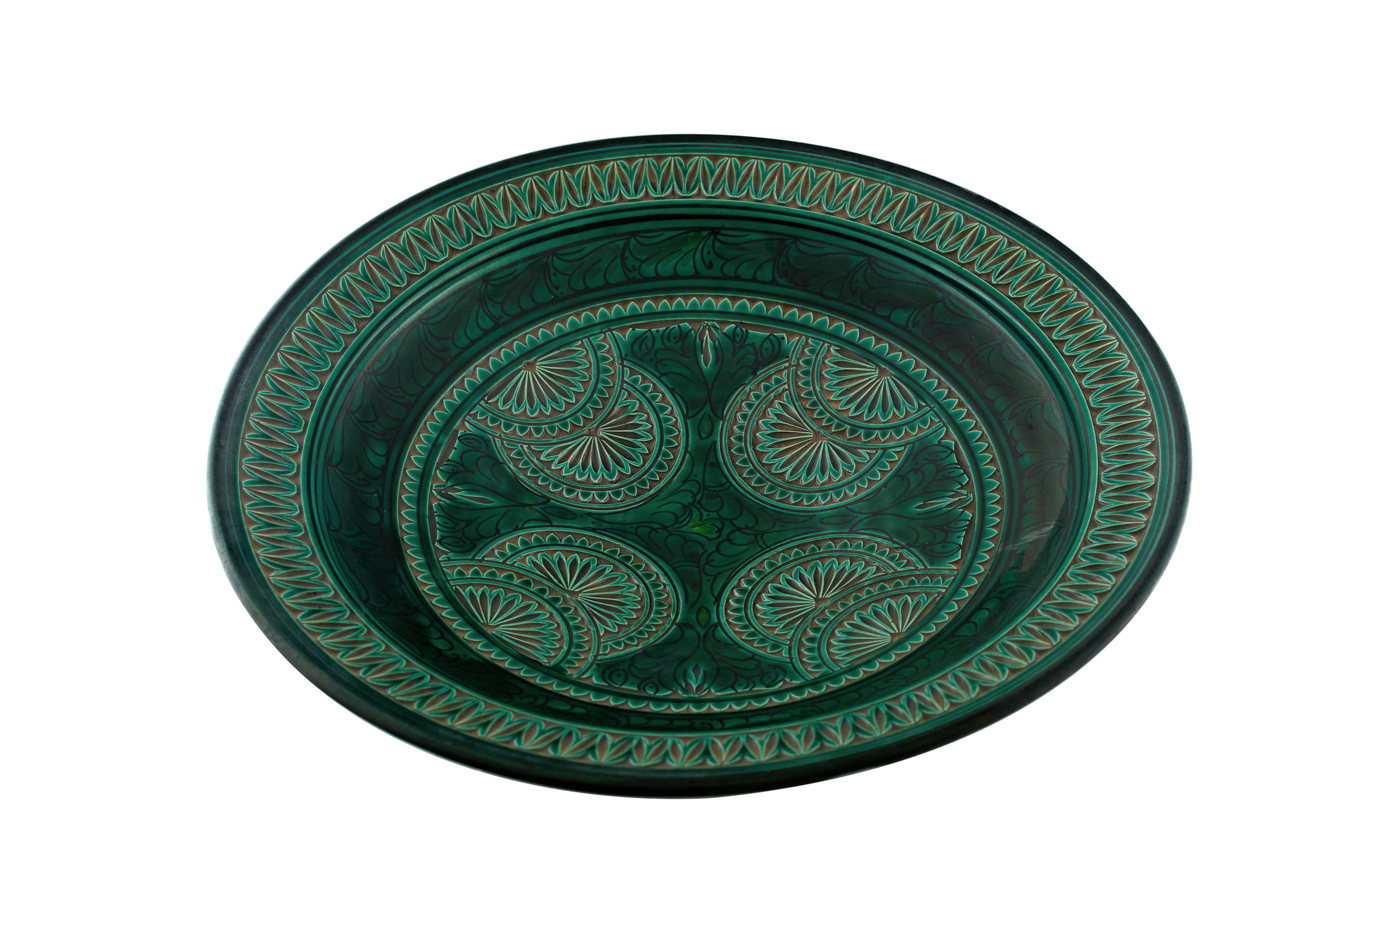 Moroccan carved ceramic plate with floral arabesque design, hunter Green